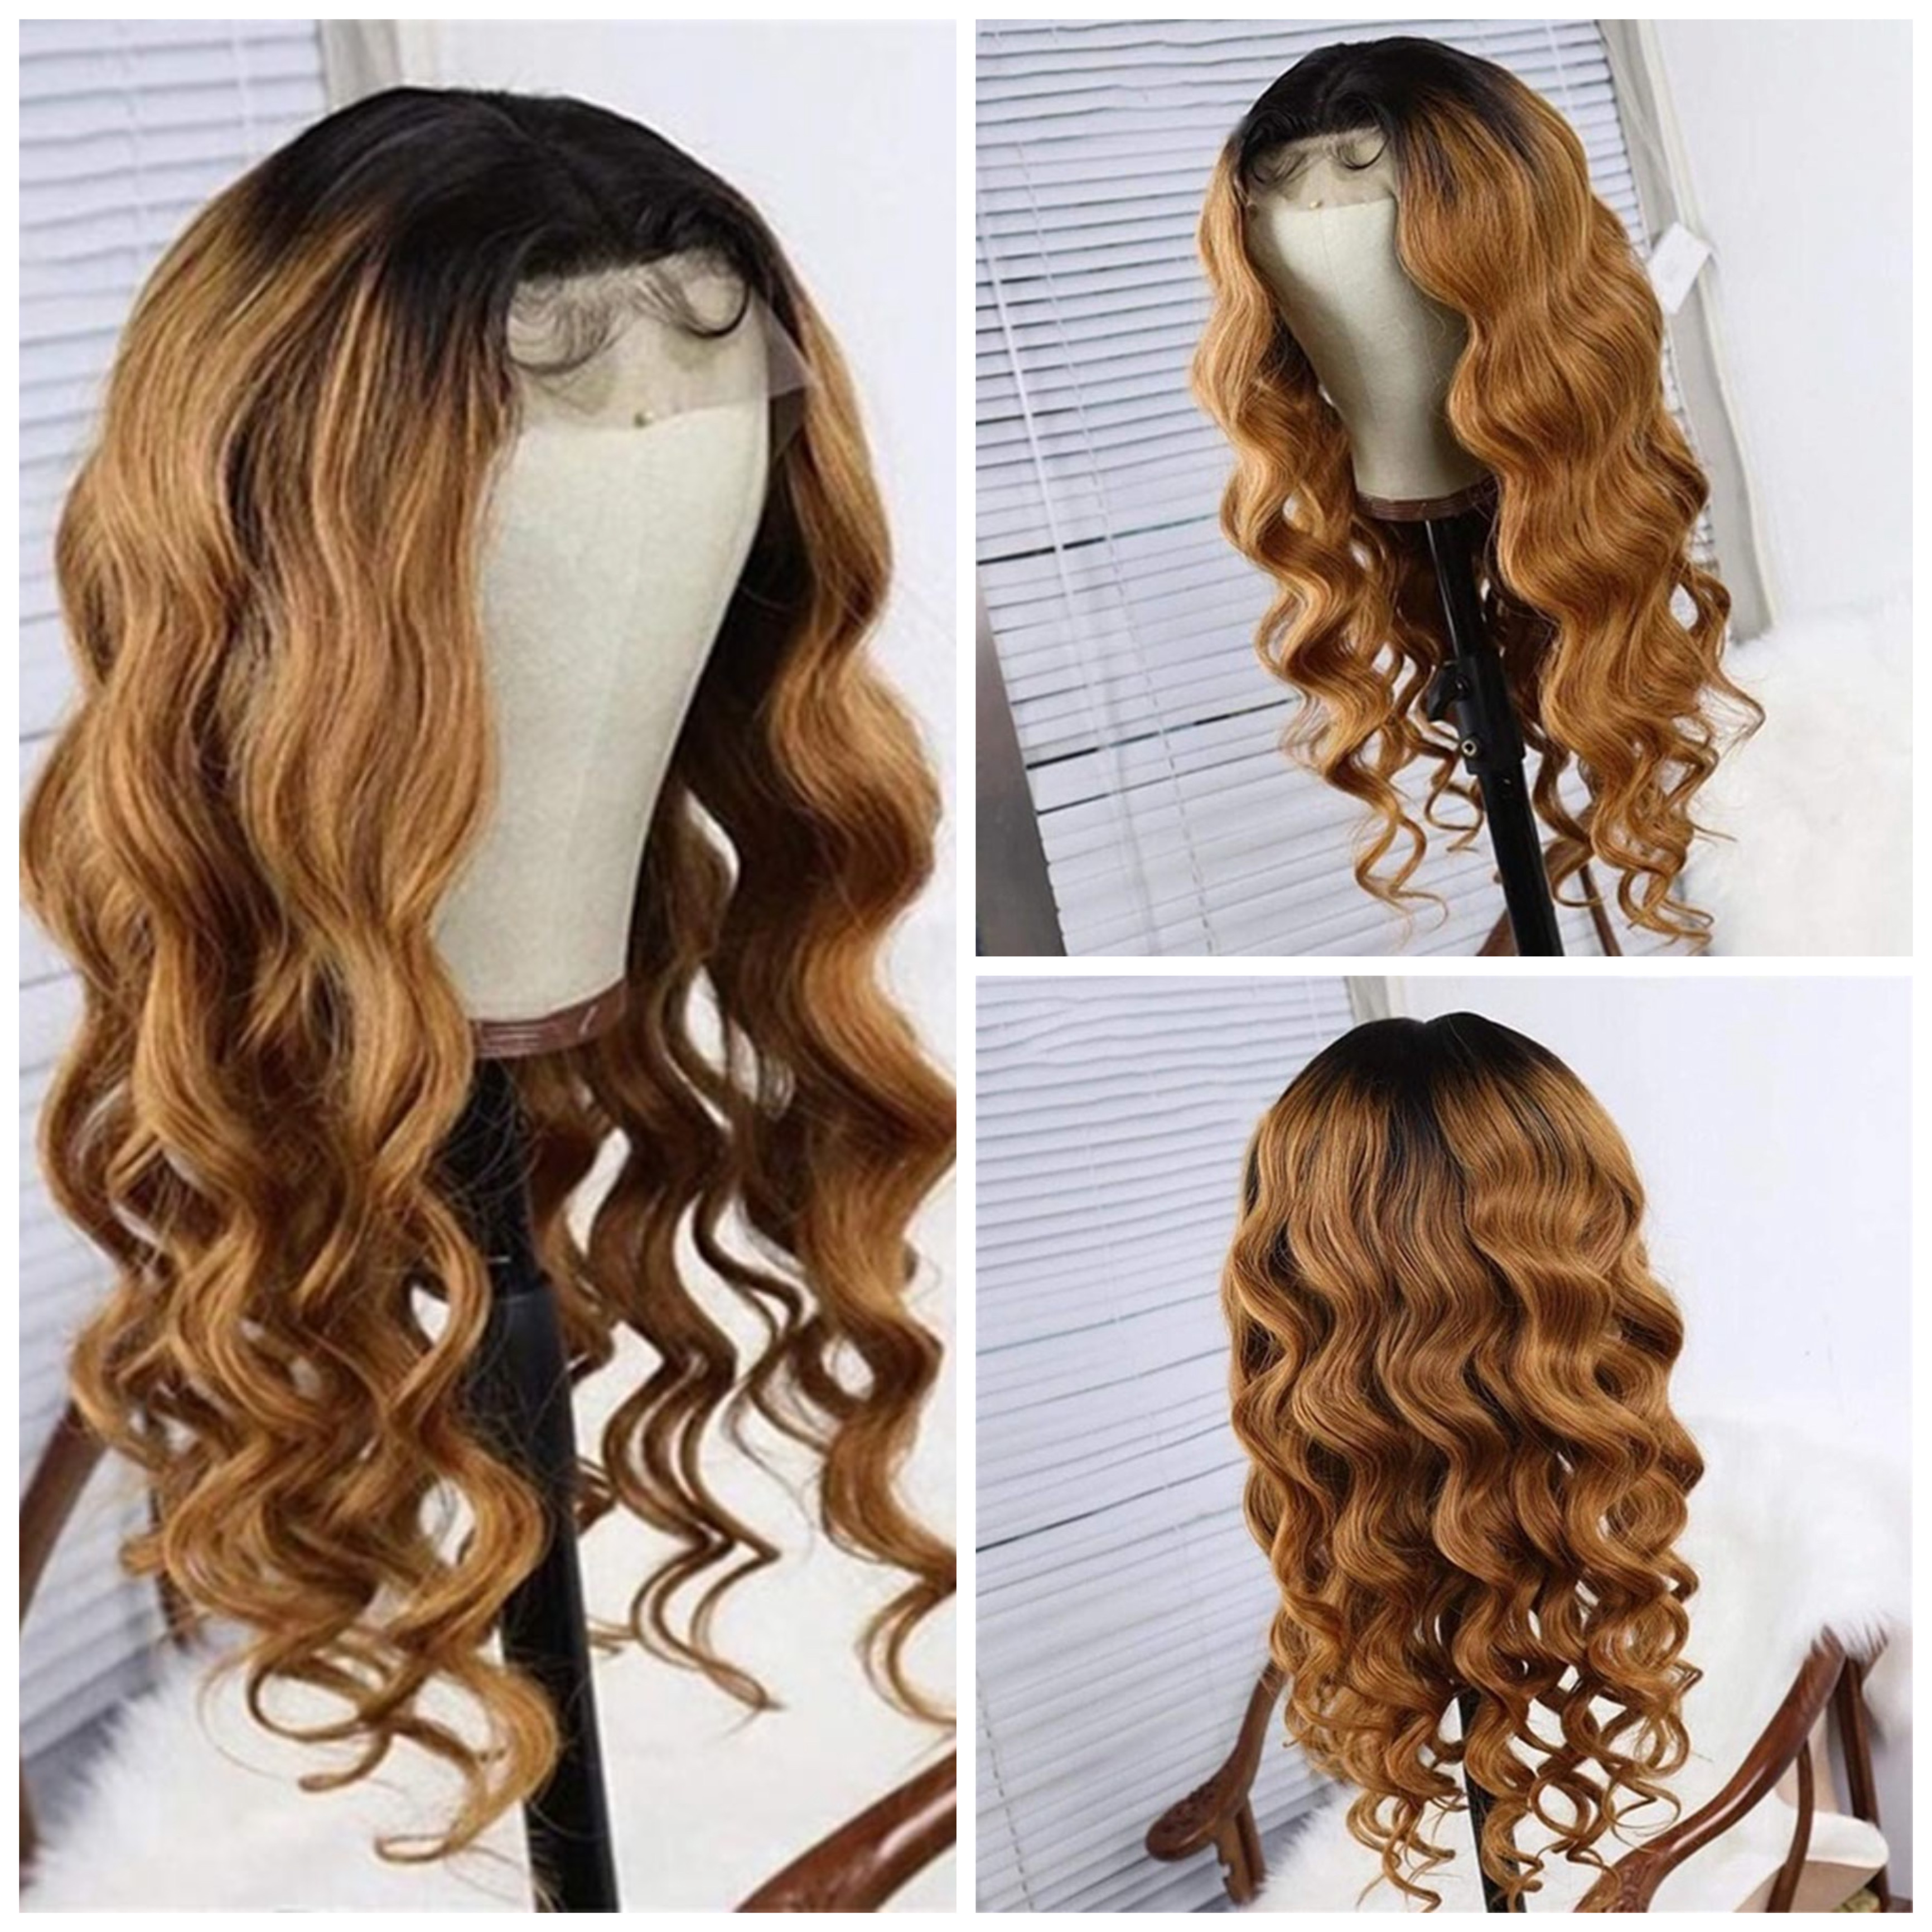 Glueless Ombre 1B/#27 13x6 Lace Front Human Hair Wigs With Baby Hair Brazilian 13×6 Lace Front Wig For Black Women